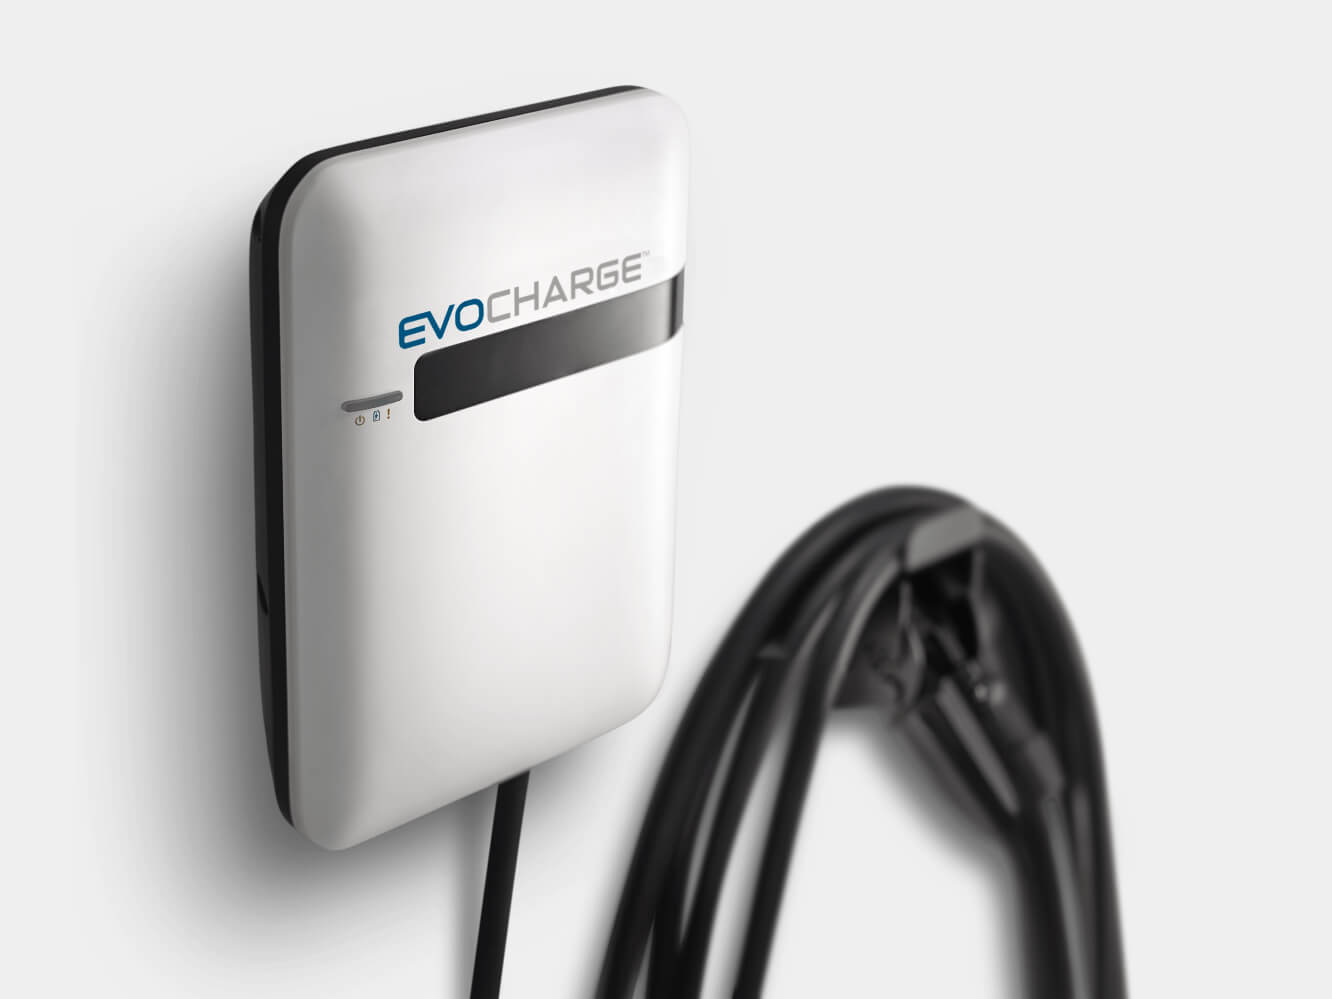 An EvoCharge charger hung up on a white wall